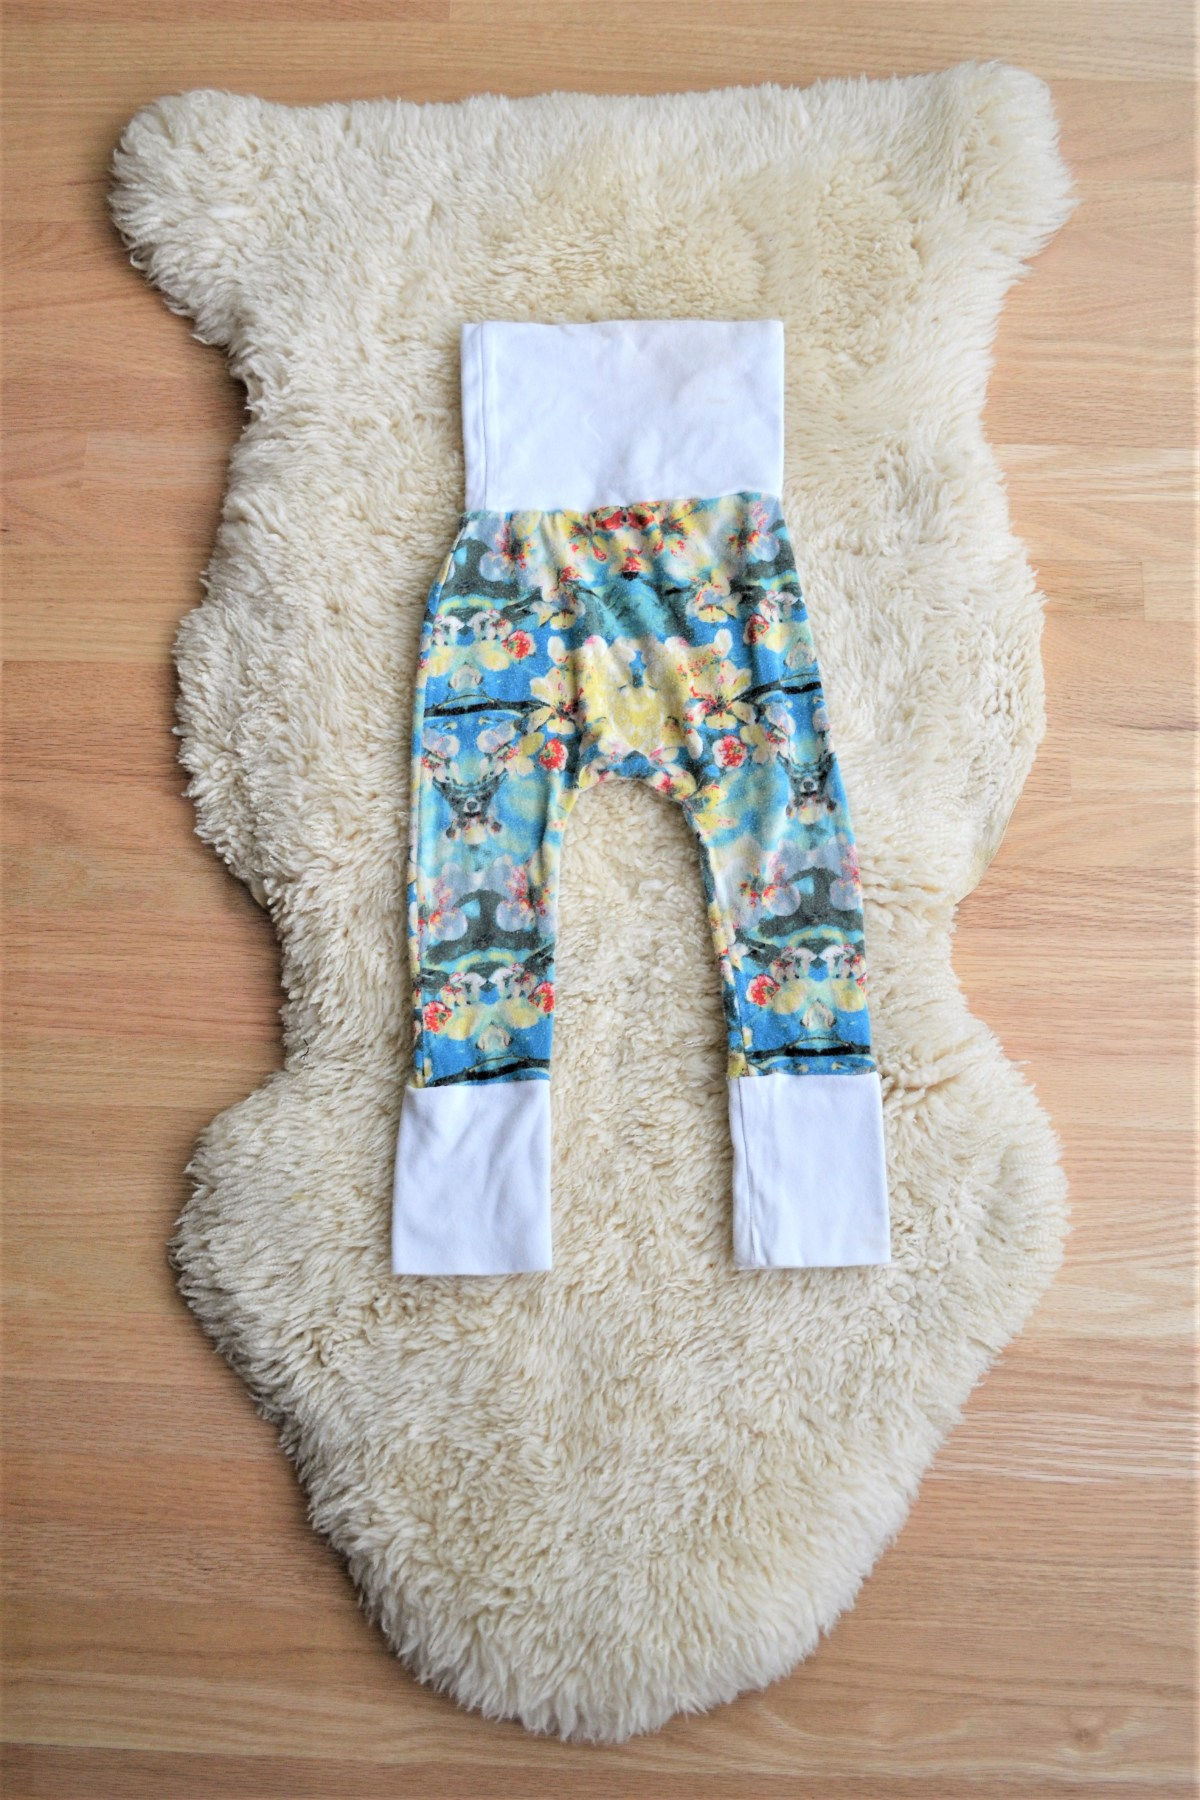 How to Make Kids Clothes - Grow with me kids pants